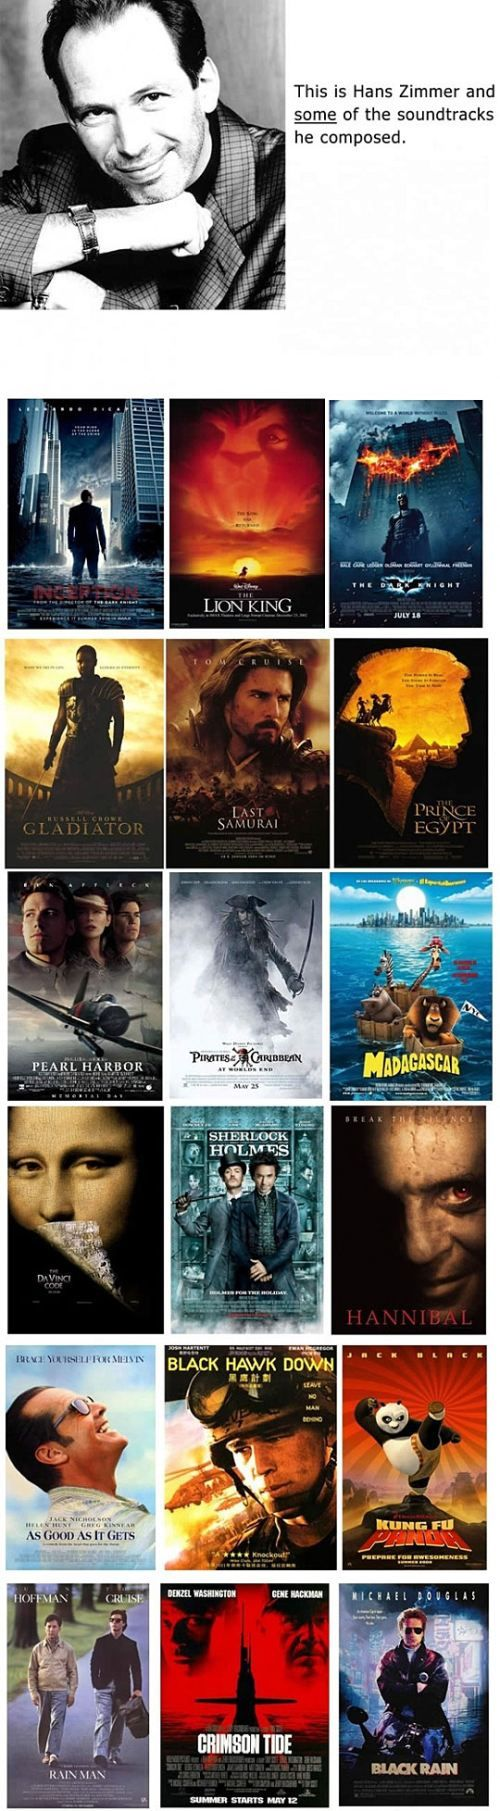 Just a small few of the films Hans Zimmer has composed